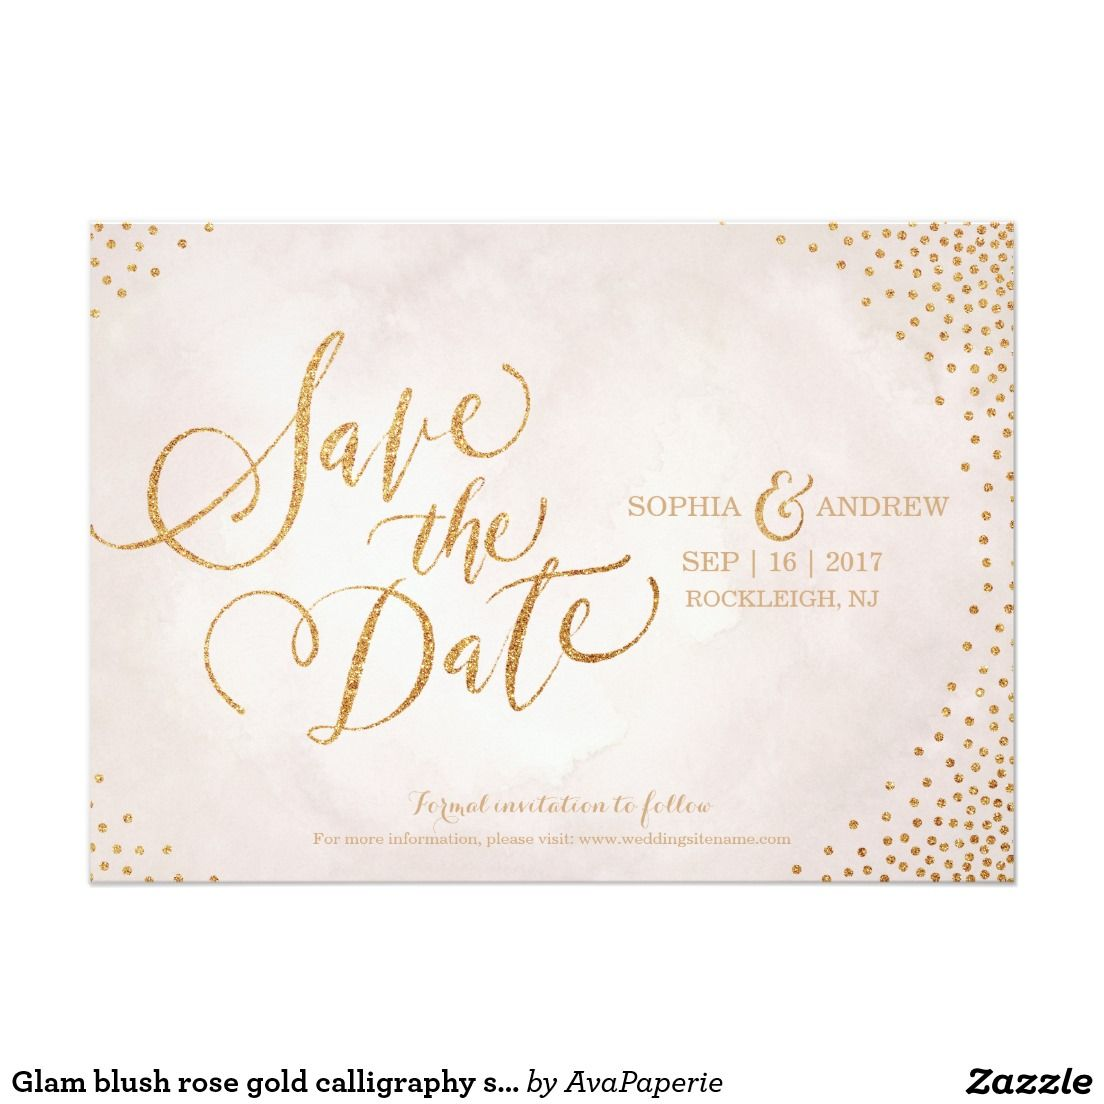 Glam blush rose gold calligraphy save the date | Marriage Ideas ...